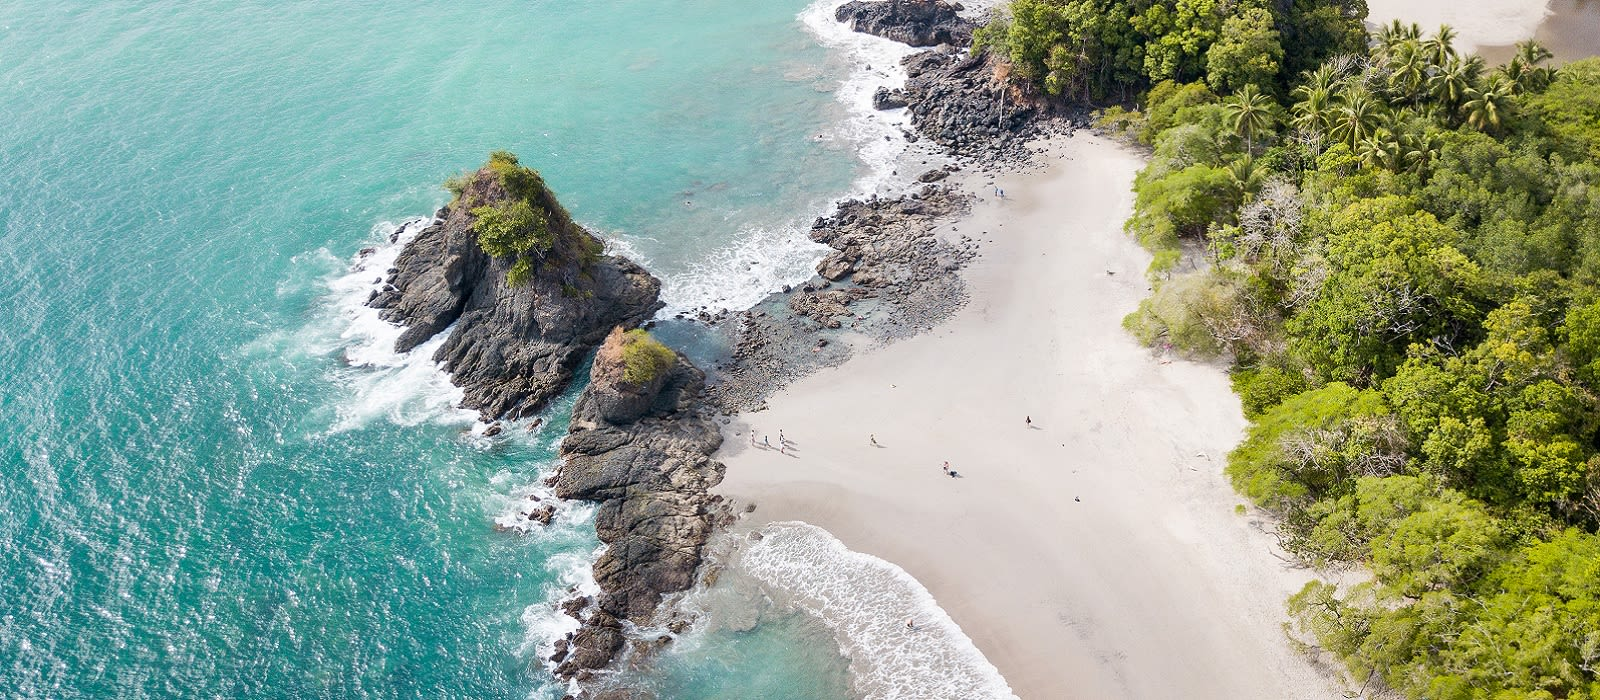 Costa Rica Tour: Private Luxury Vacation with Enchanting Travels